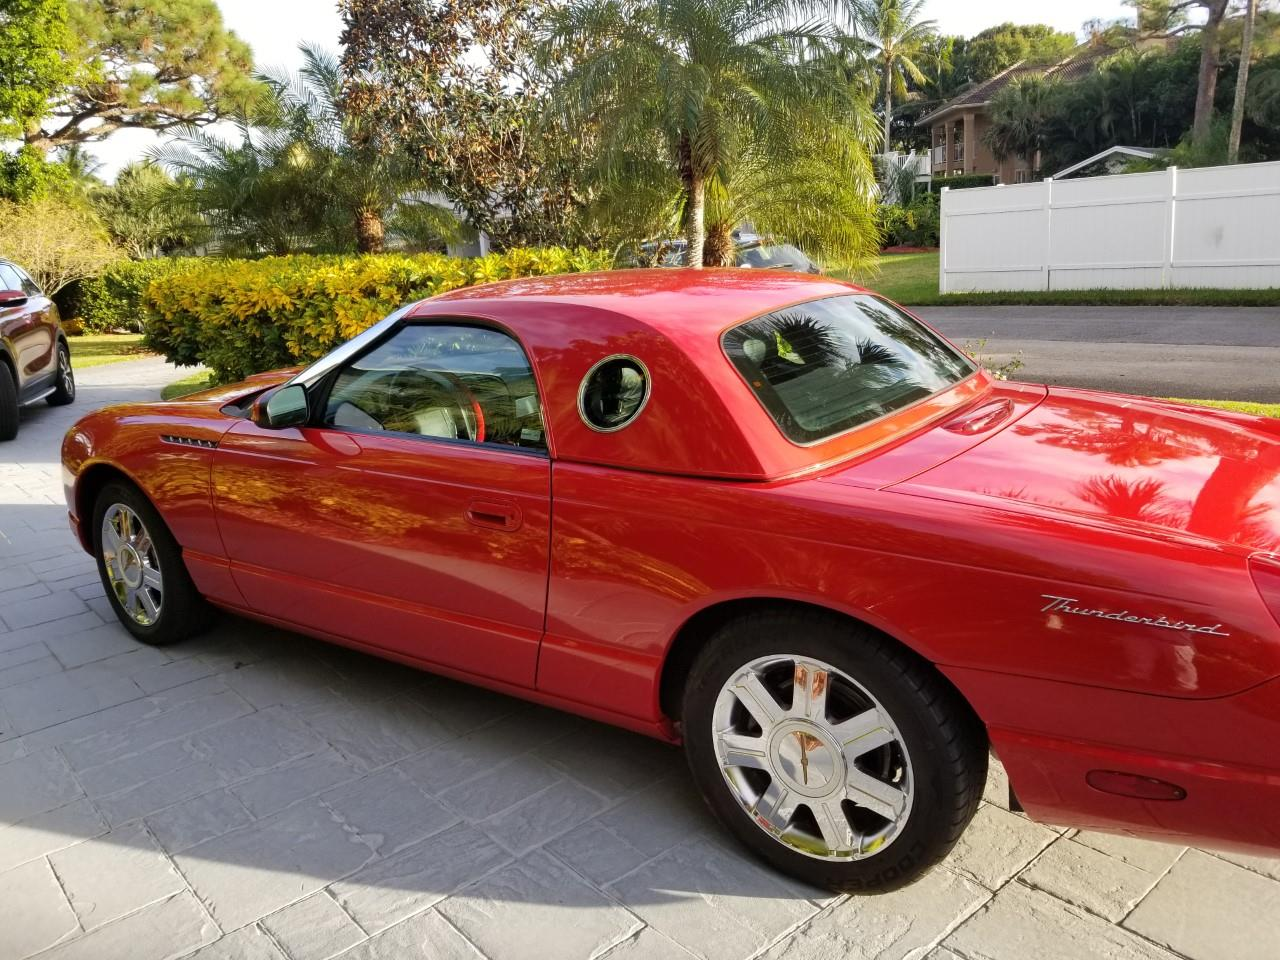 2004 Ford Thunderbird for sale in Lake Park, FL – photo 10